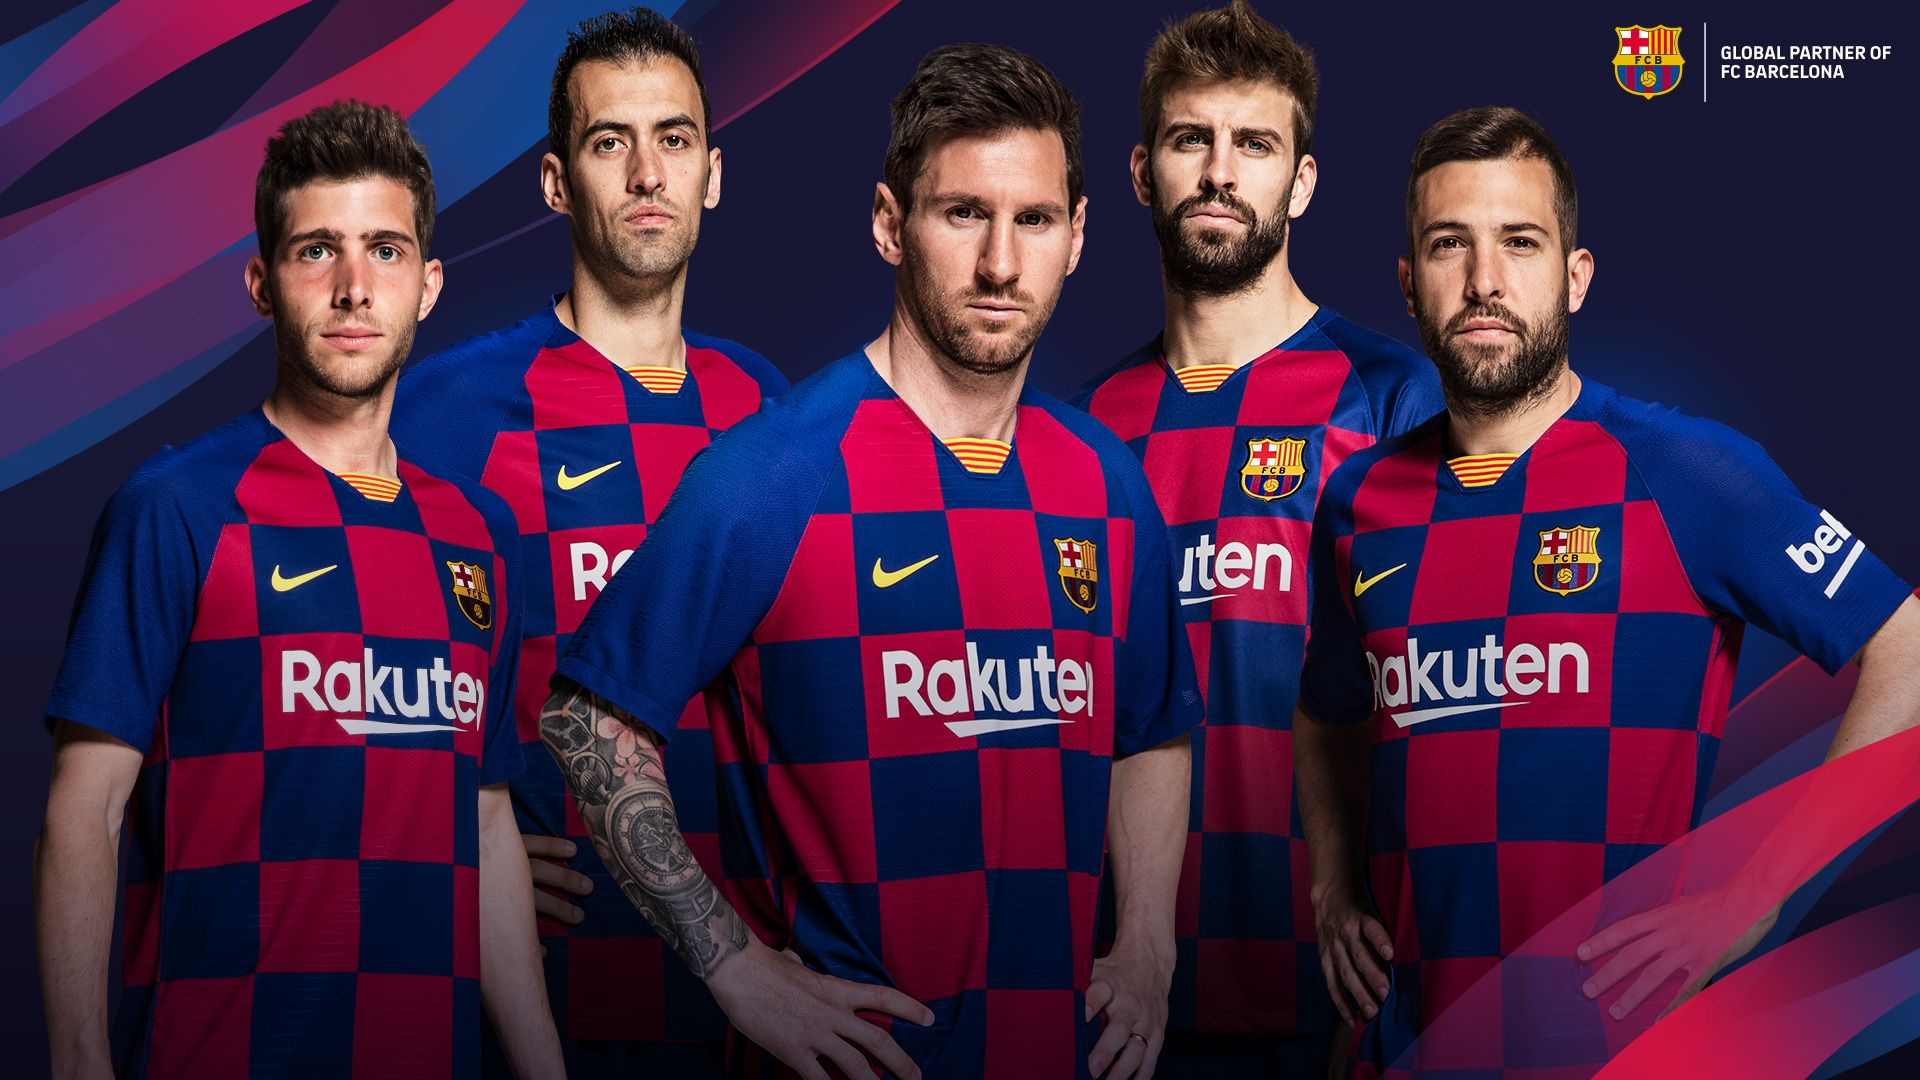 PES 2020 Wallpapers   Top PES 2020 Backgrounds   WallpaperAccess 1920x1080